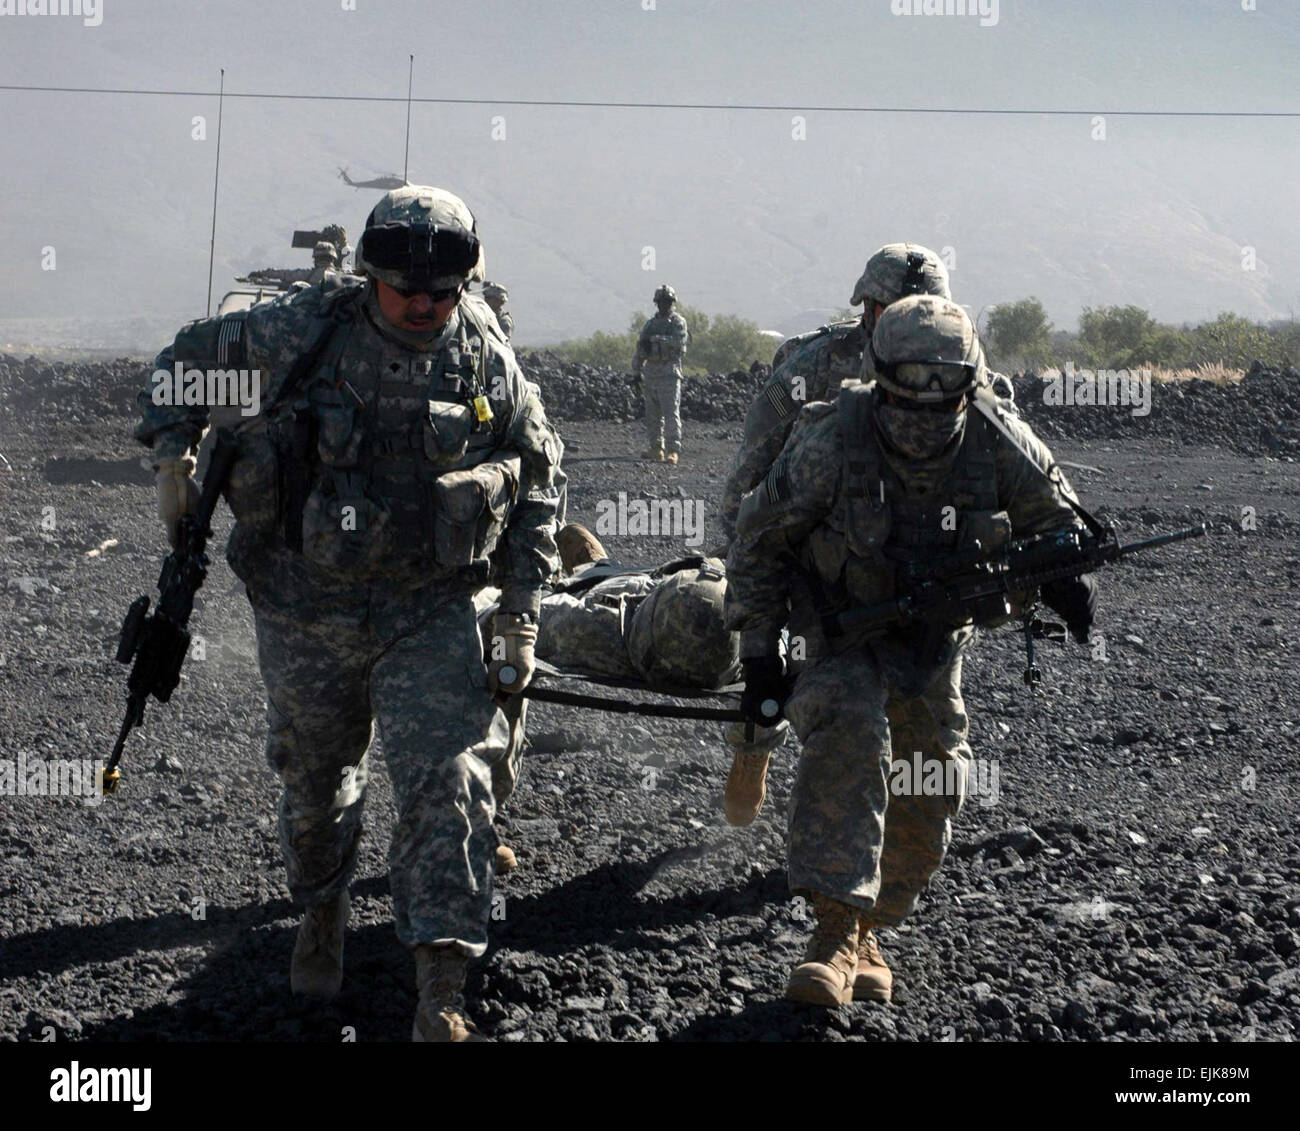 Soldiers from 3rd Infantry Brigade Combat Team, 25th Infantry Division, carry a fellow Soldier on a litter during - Stock Image